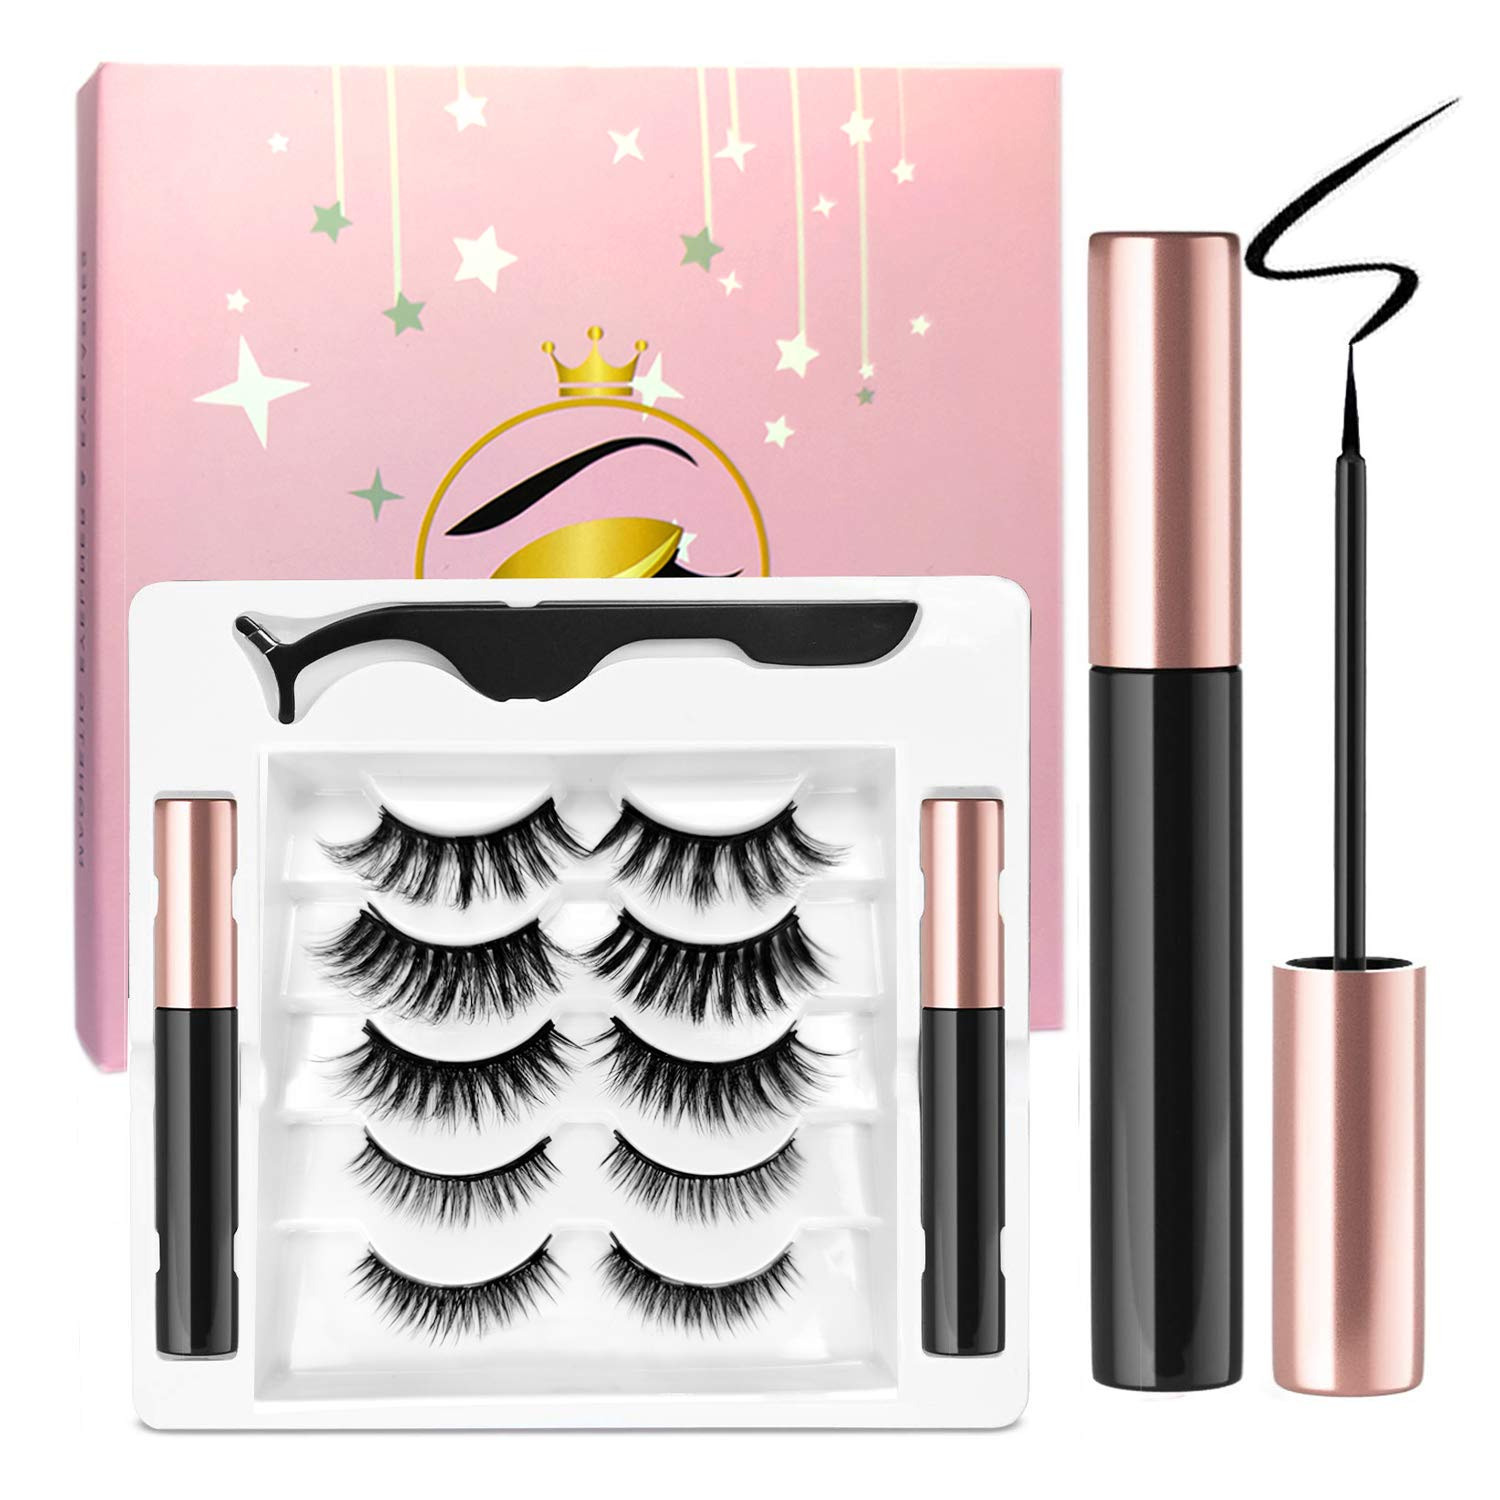 Ceaver Magnetic Eyelash and Eyeliner Set - 2 Magnetic Eyeliner Pencils Waterproof Magnetic Eyelash Eet with 5 Pairs of Reusable Magnetic Eyelashes in Different Styles for Easy Wear